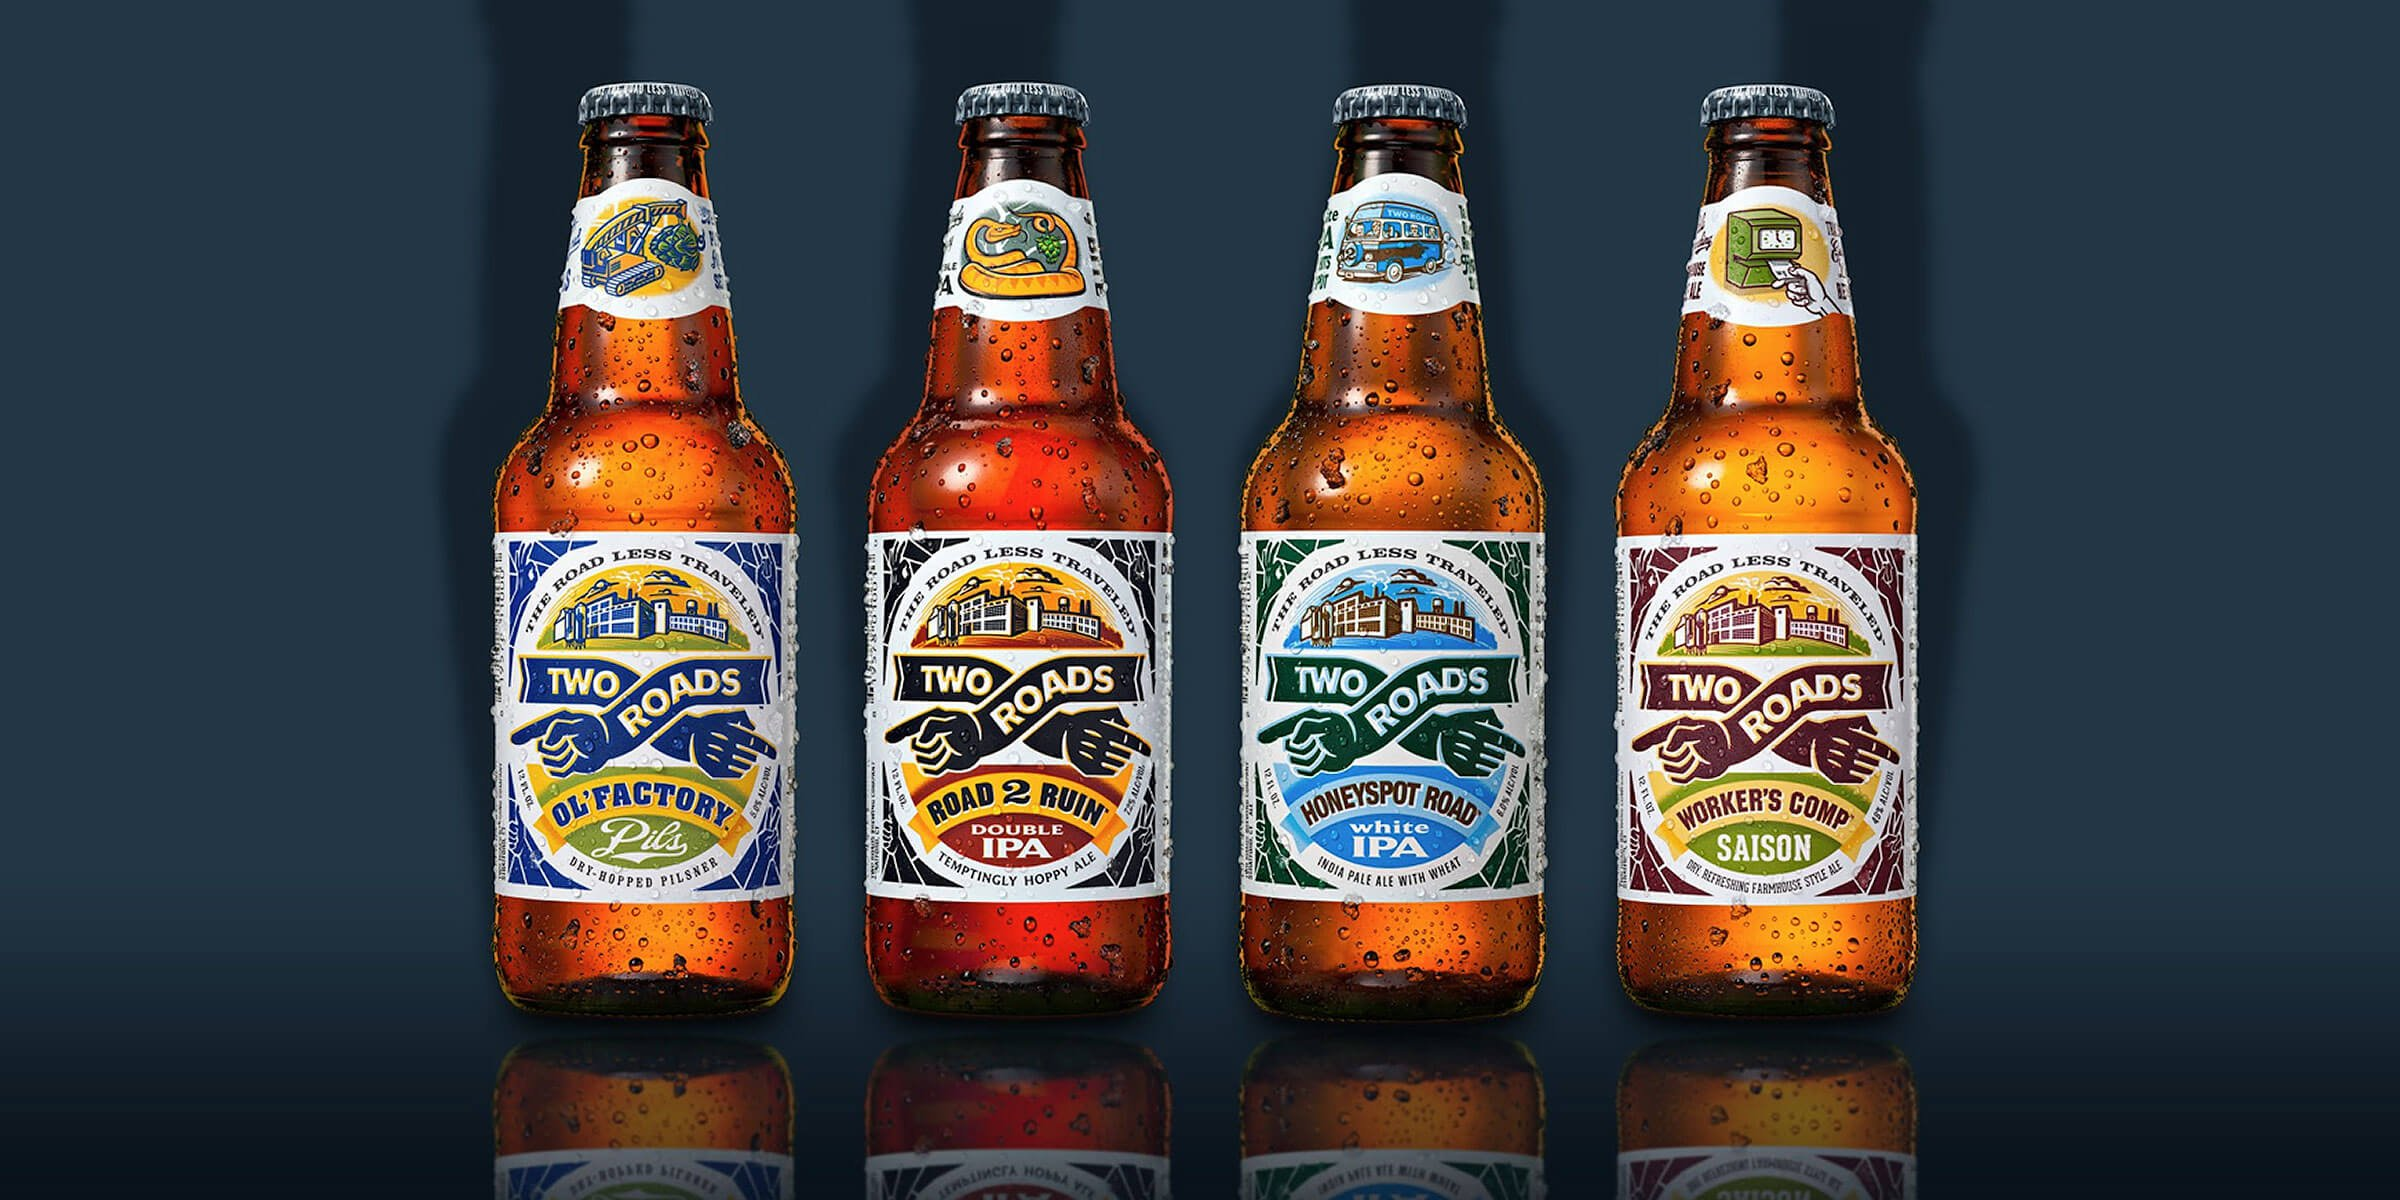 Lineup of bottled beers offered by Two Roads Brewing Co